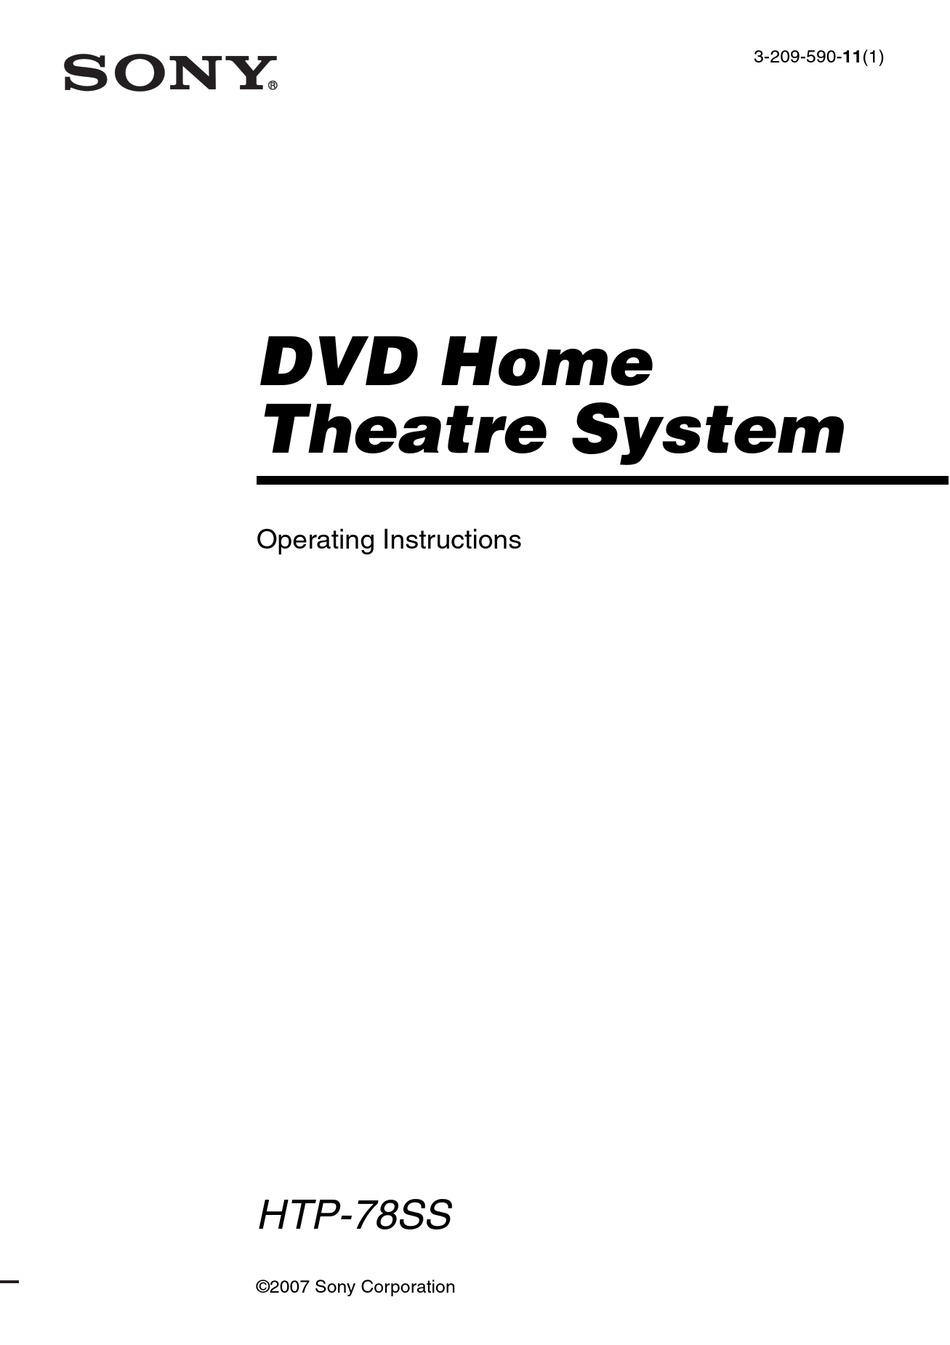 SONY MODEL HTP-78SS OPERATING INSTRUCTIONS MANUAL Pdf